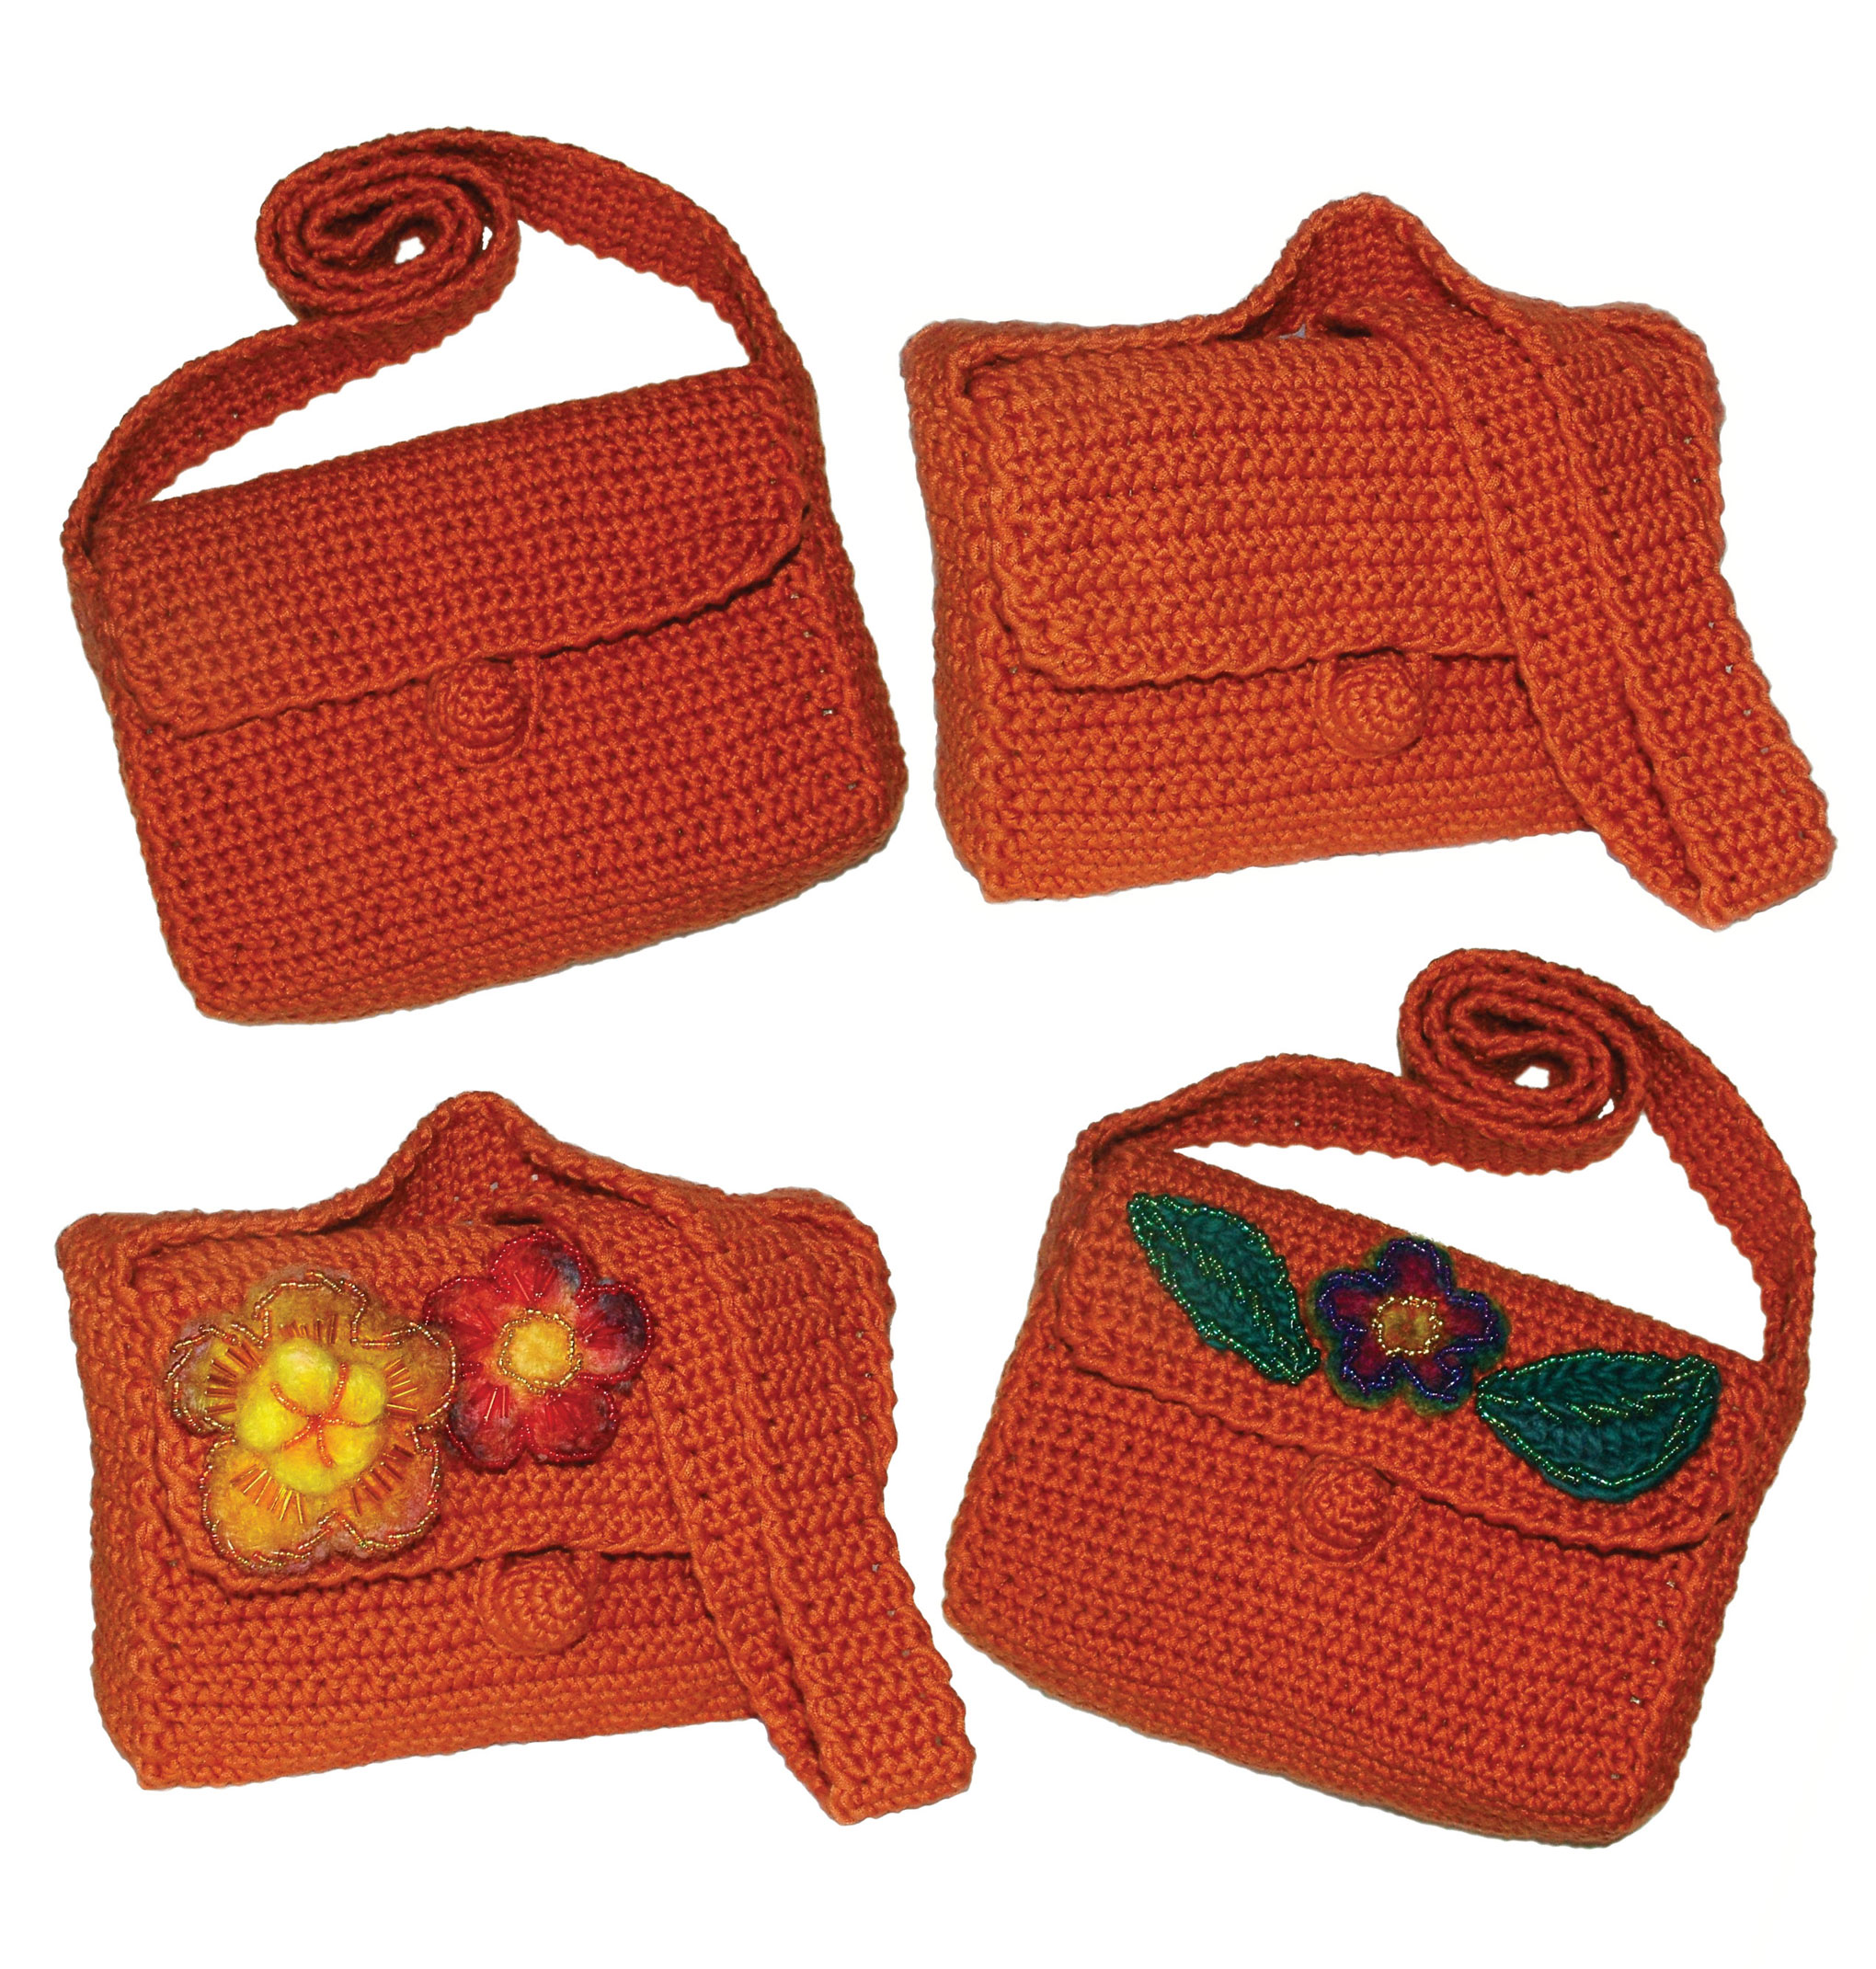 Crochet Bag Patterns Free Download : Easy Basic Crochet Bag/Purse Pattern